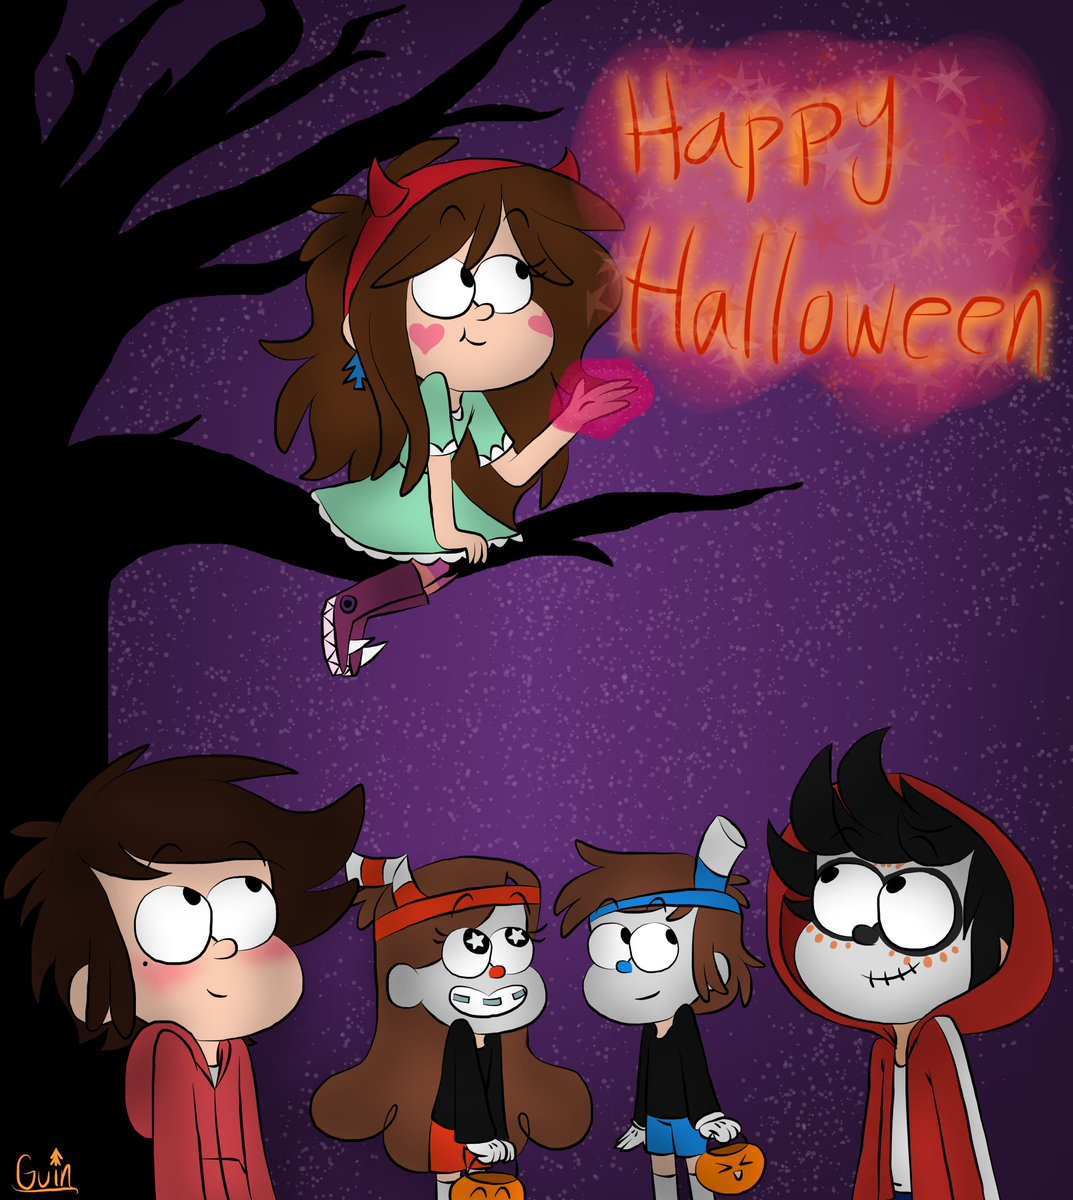 // #HappyHalloween Have a fun and safe time. And make your costumes shine! ^w^